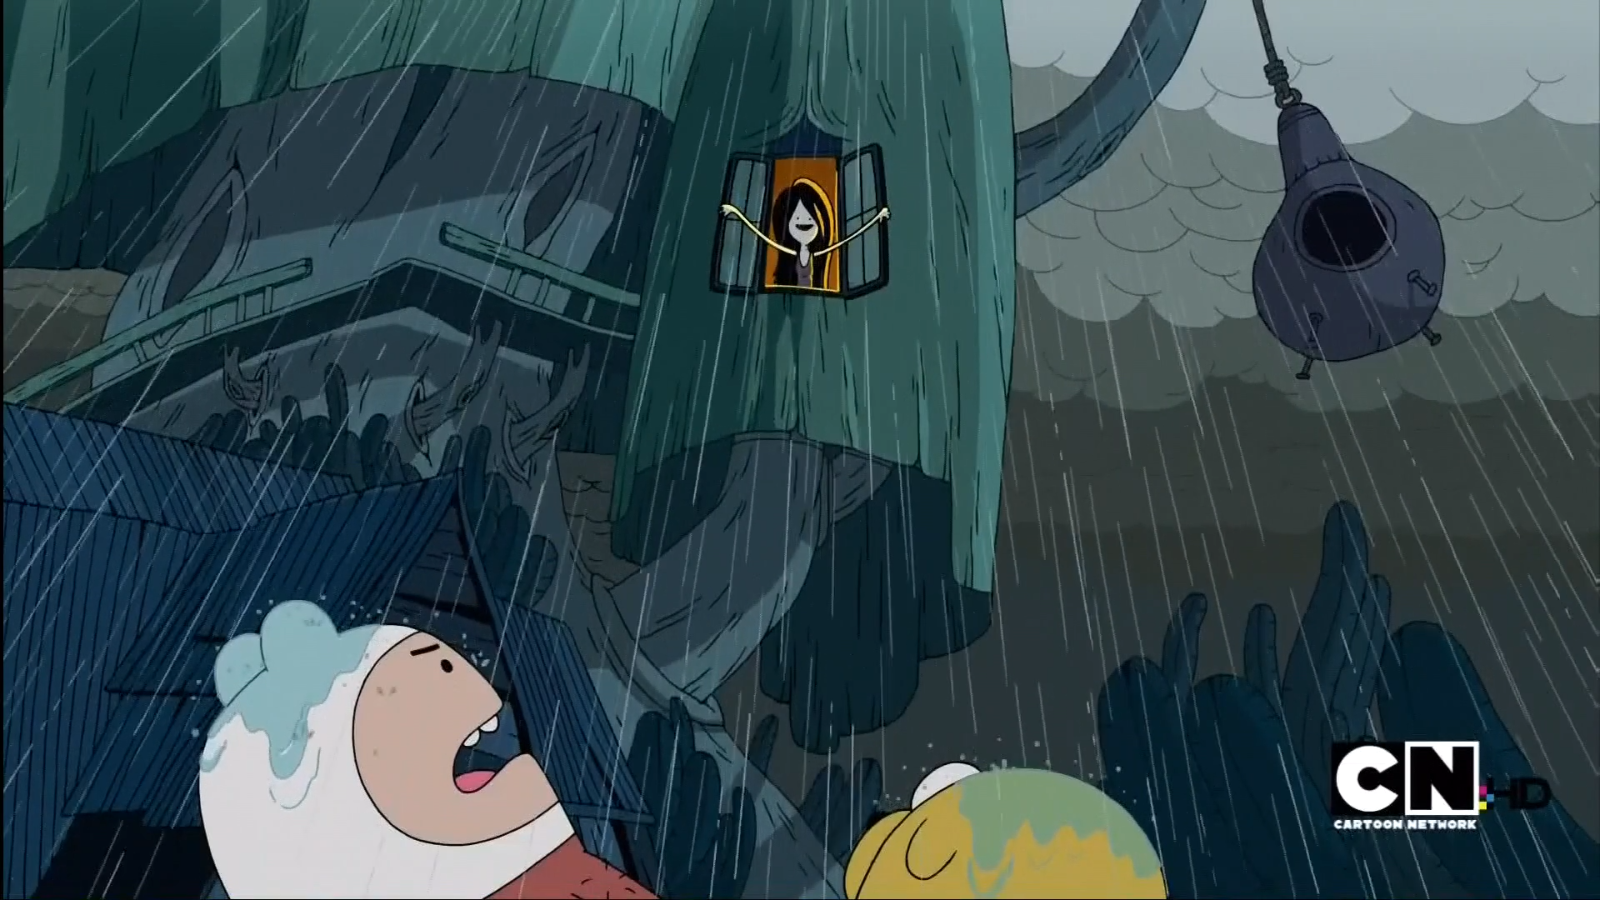 S1e12 Marceline just evicted you